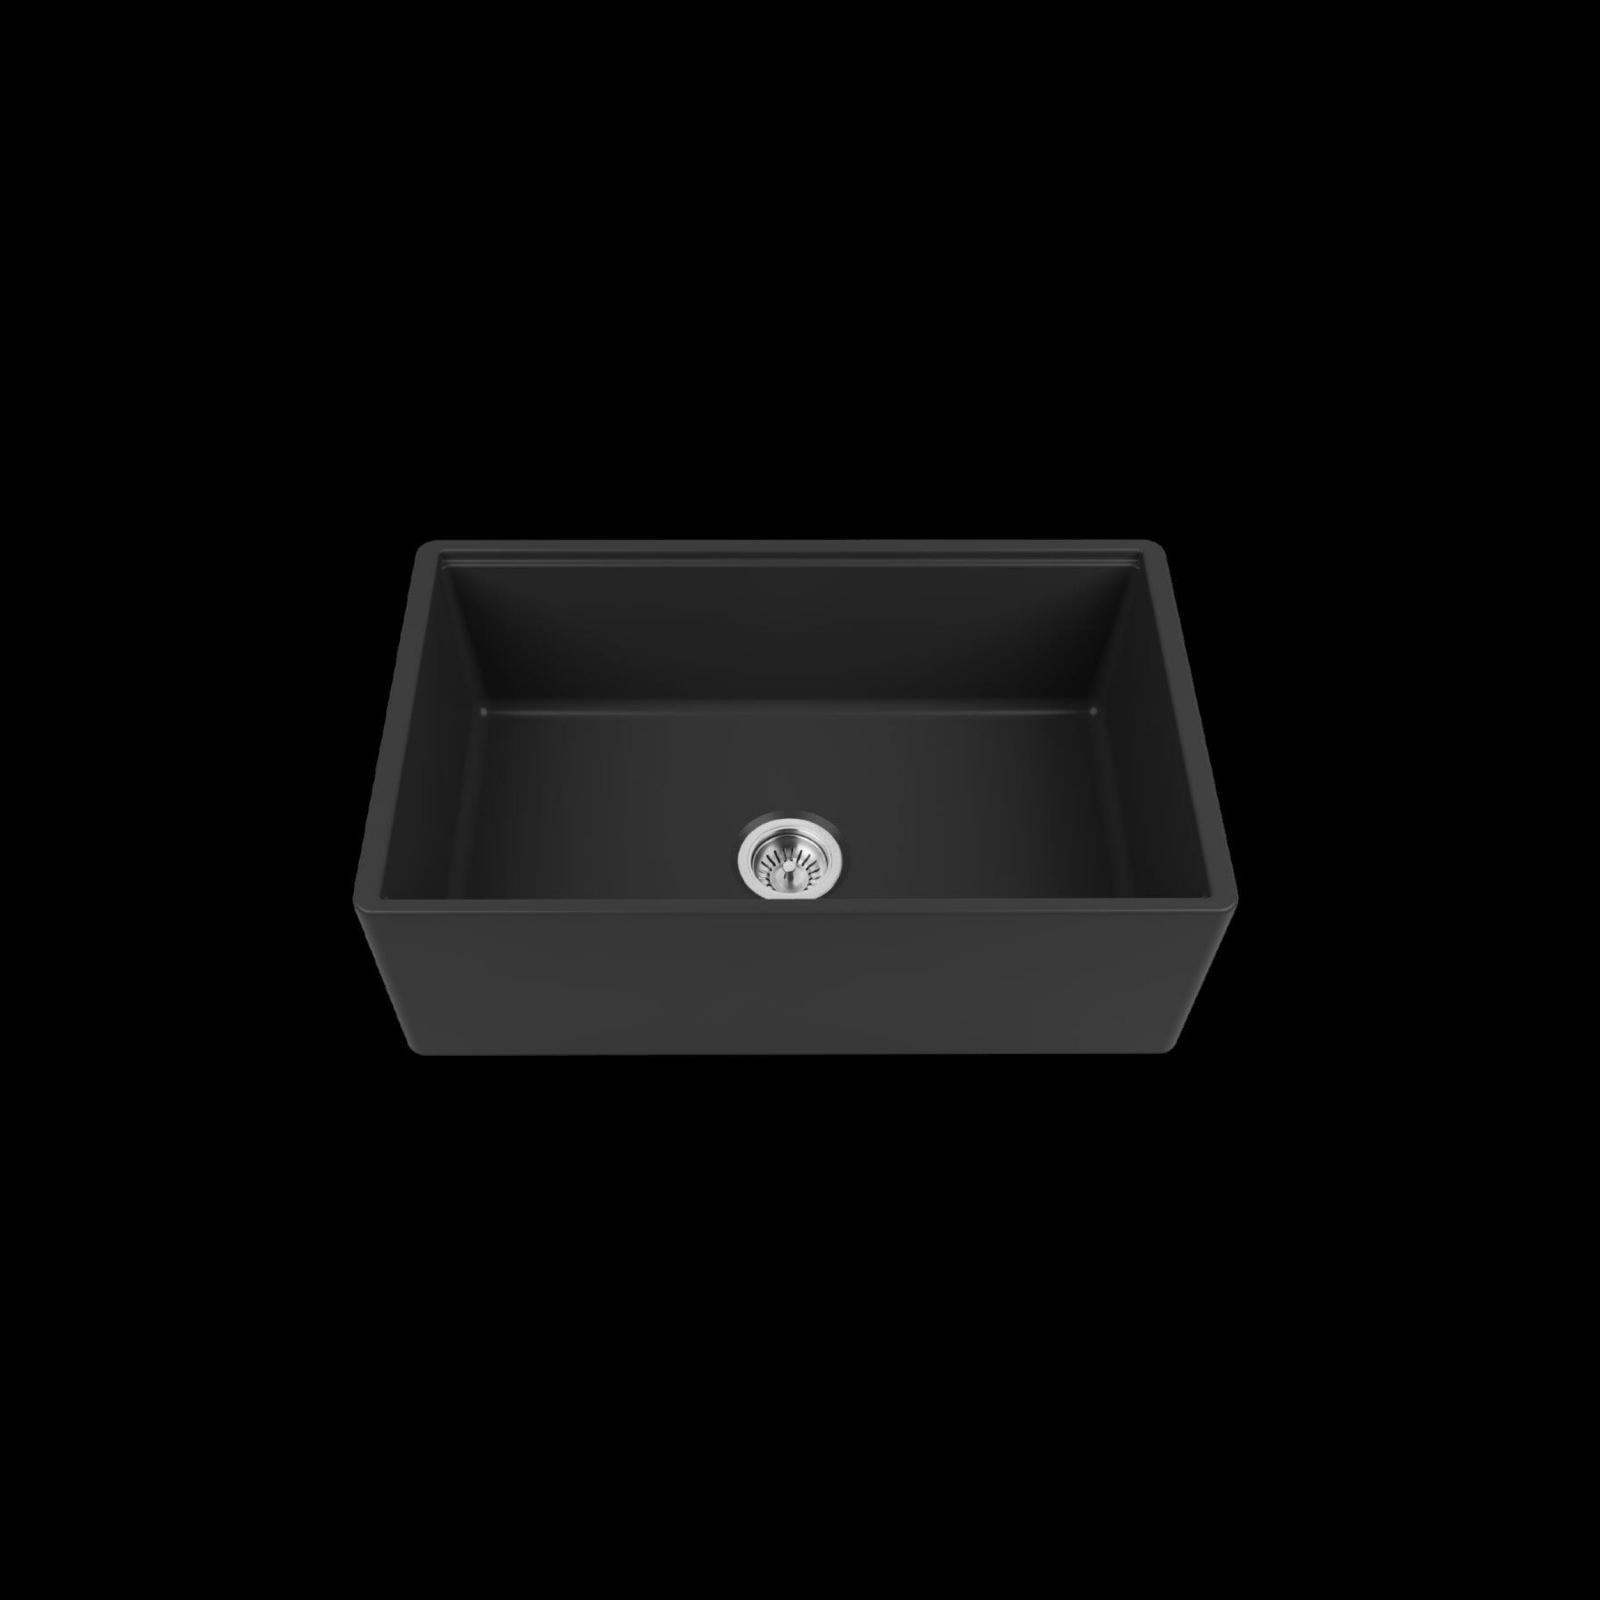 High-quality sink Louis Le Grand I black - single bowl, ceramic - 2